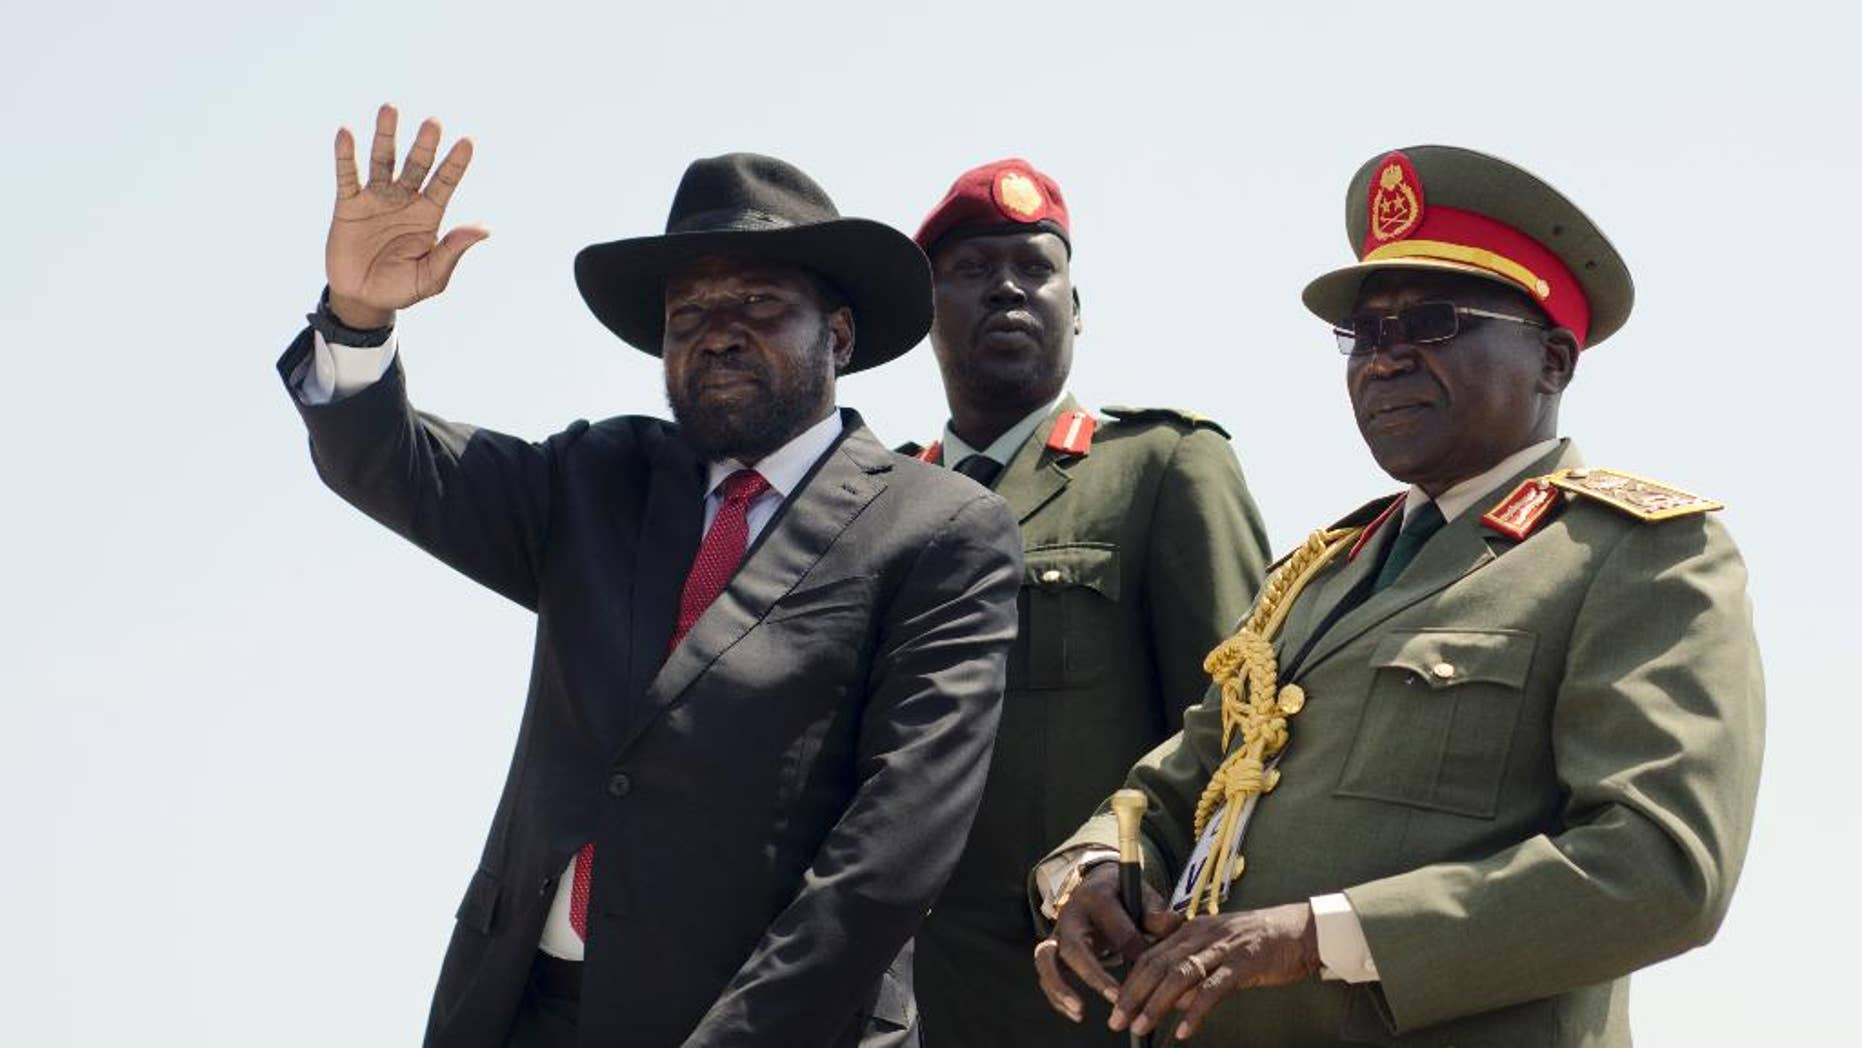 FILE - In this Thursday, July 9, 2015 file photo, South Sudan's President Salva Kiir, left, accompanied by army chief of staff Paul Malong, right, waves during an independence day ceremony in the capital Juba, South Sudan. A spokesman said Wednesday, Feb. 8, 2017 that Kiir will seek election next year, in what will be the first vote on Salva Kiir's leadership since the turbulent country won independence. (AP Photo/Jason Patinkin, File)